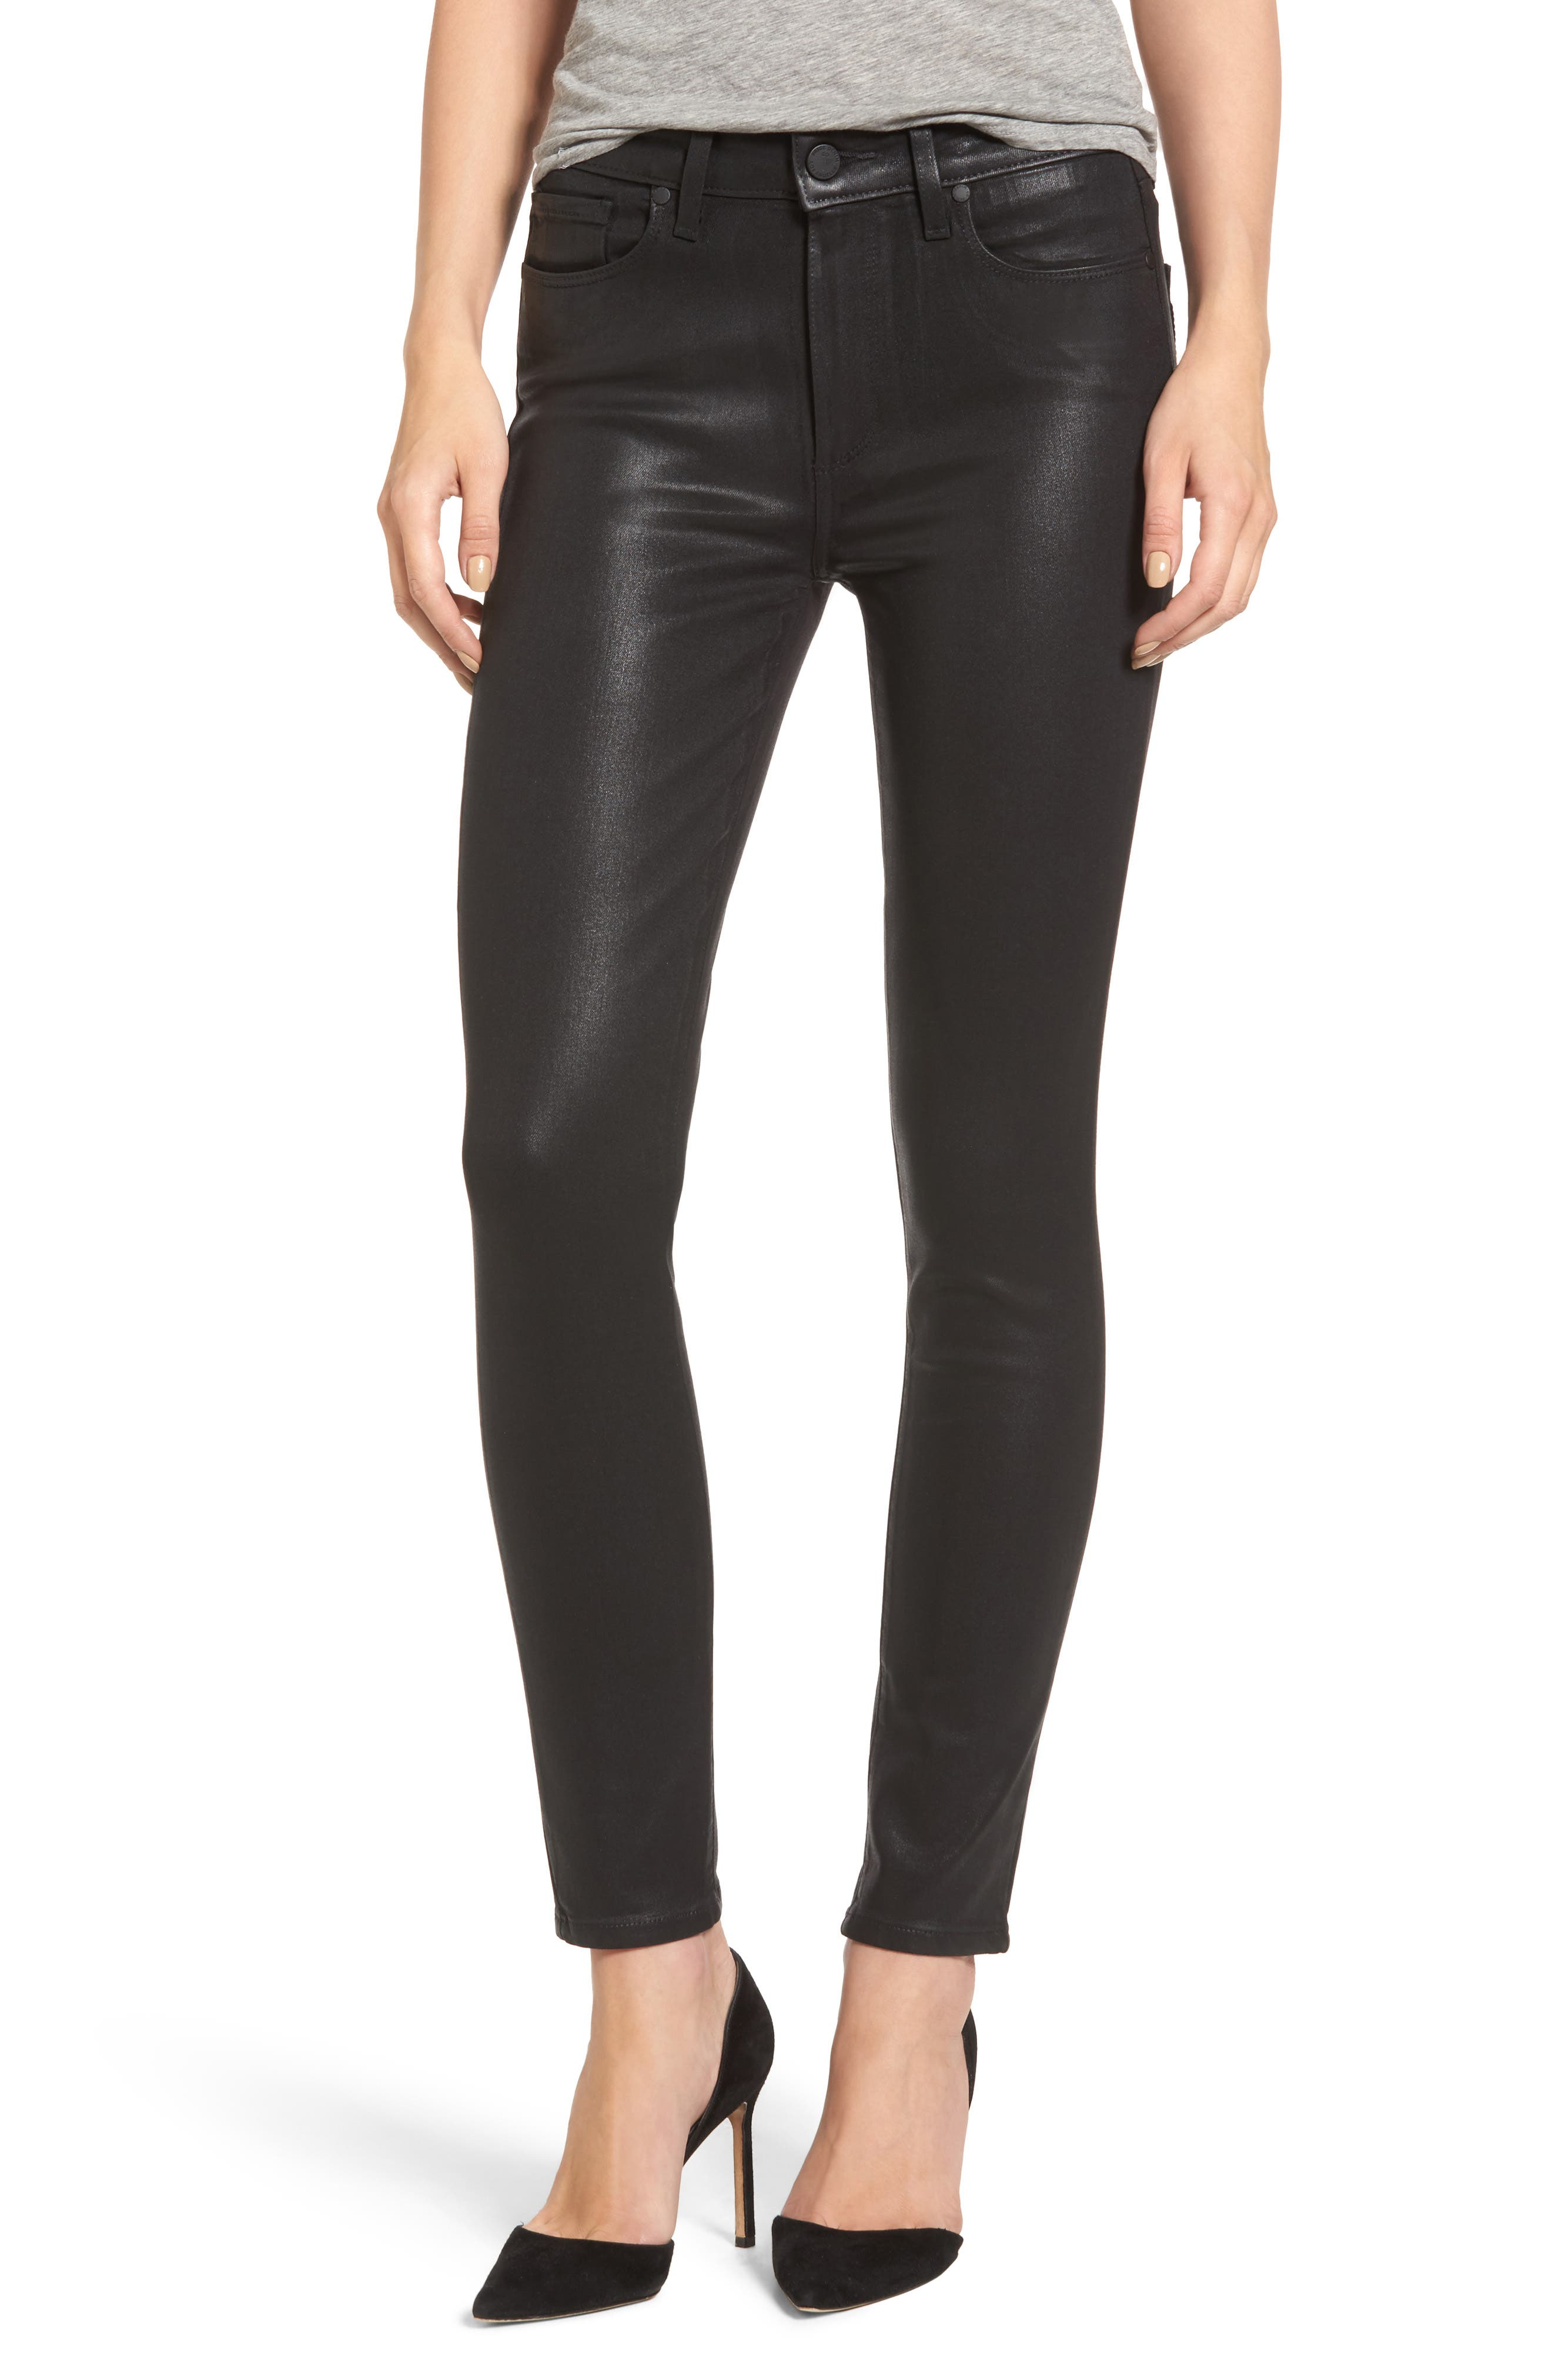 PAIGE Transcend - Hoxton High Waist Ankle Skinny Jeans, Main, color, LUXE BLACK COATED